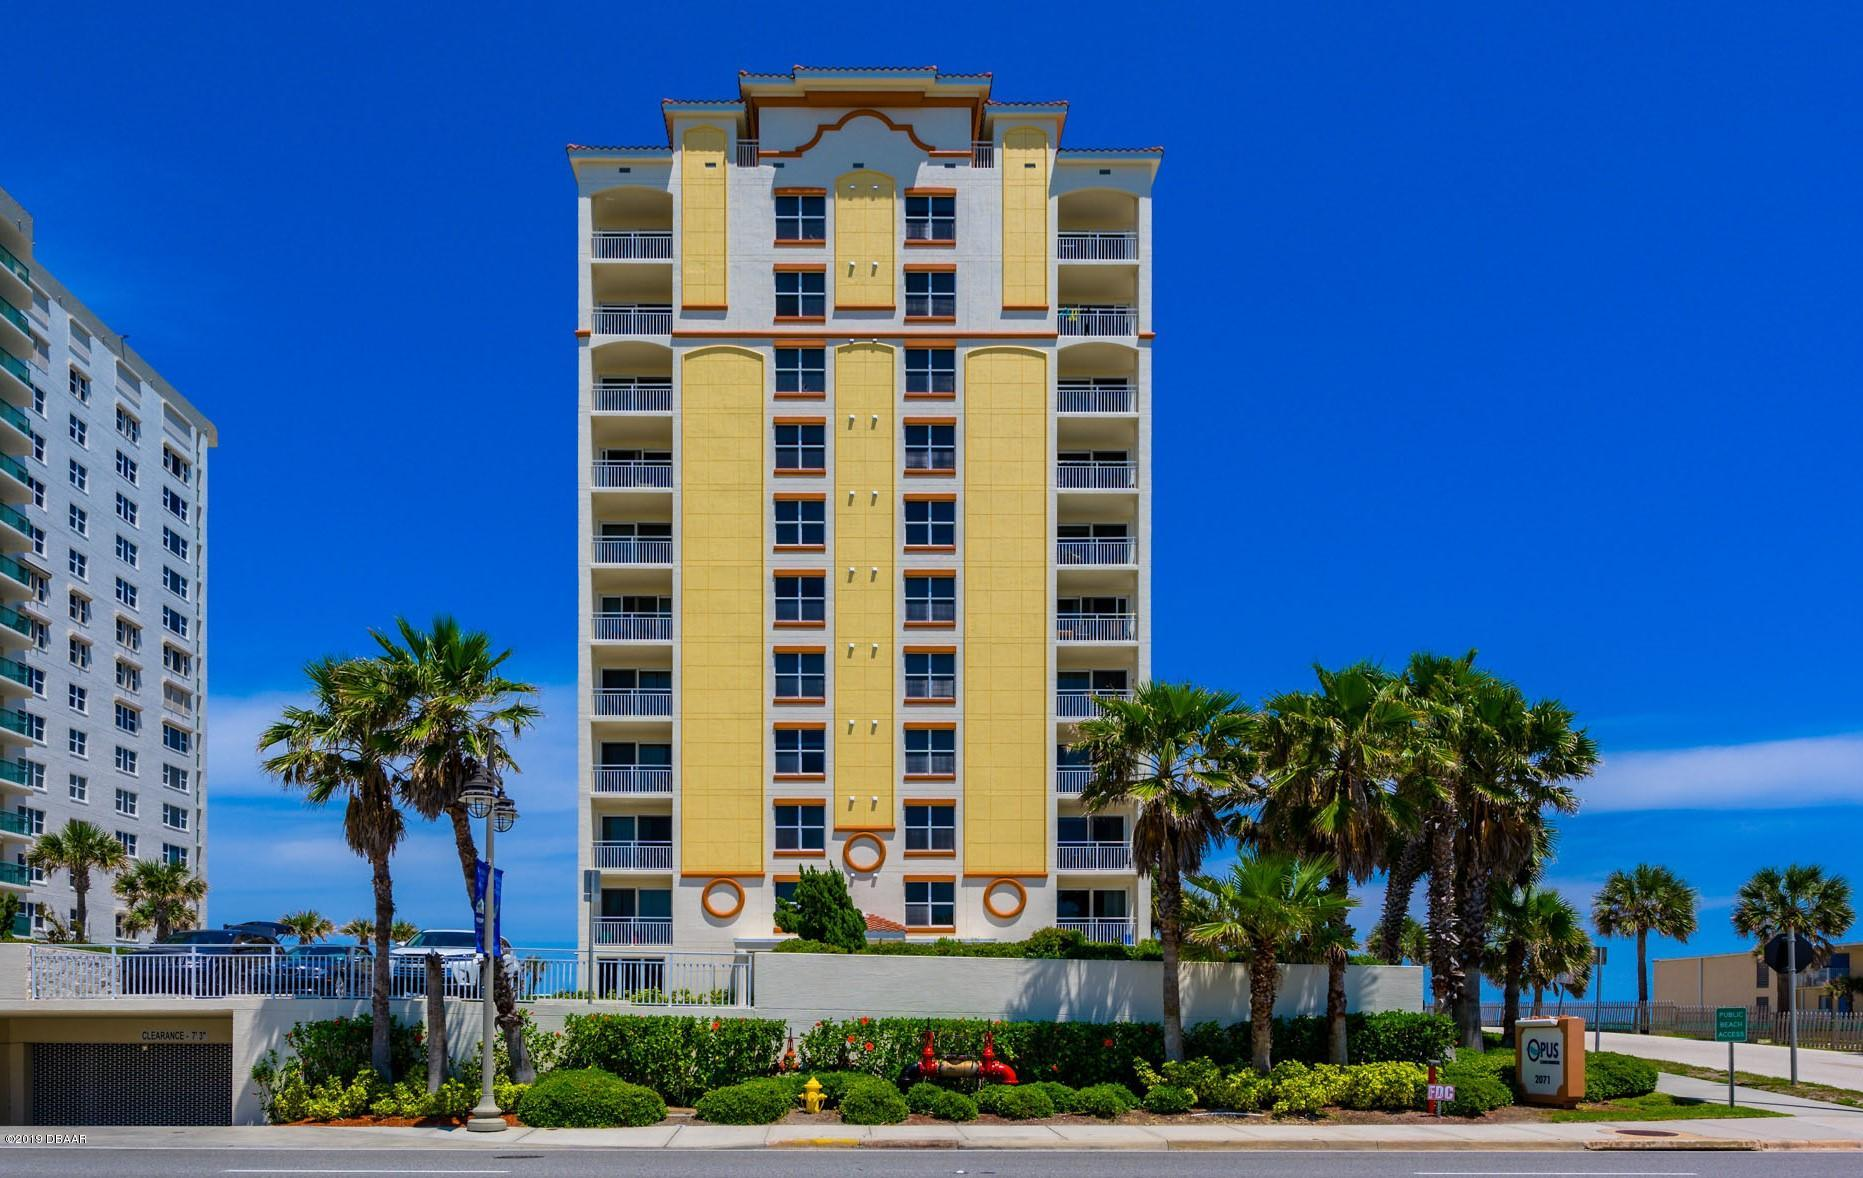 2071 Atlantic Avenue Daytona Beach - 2